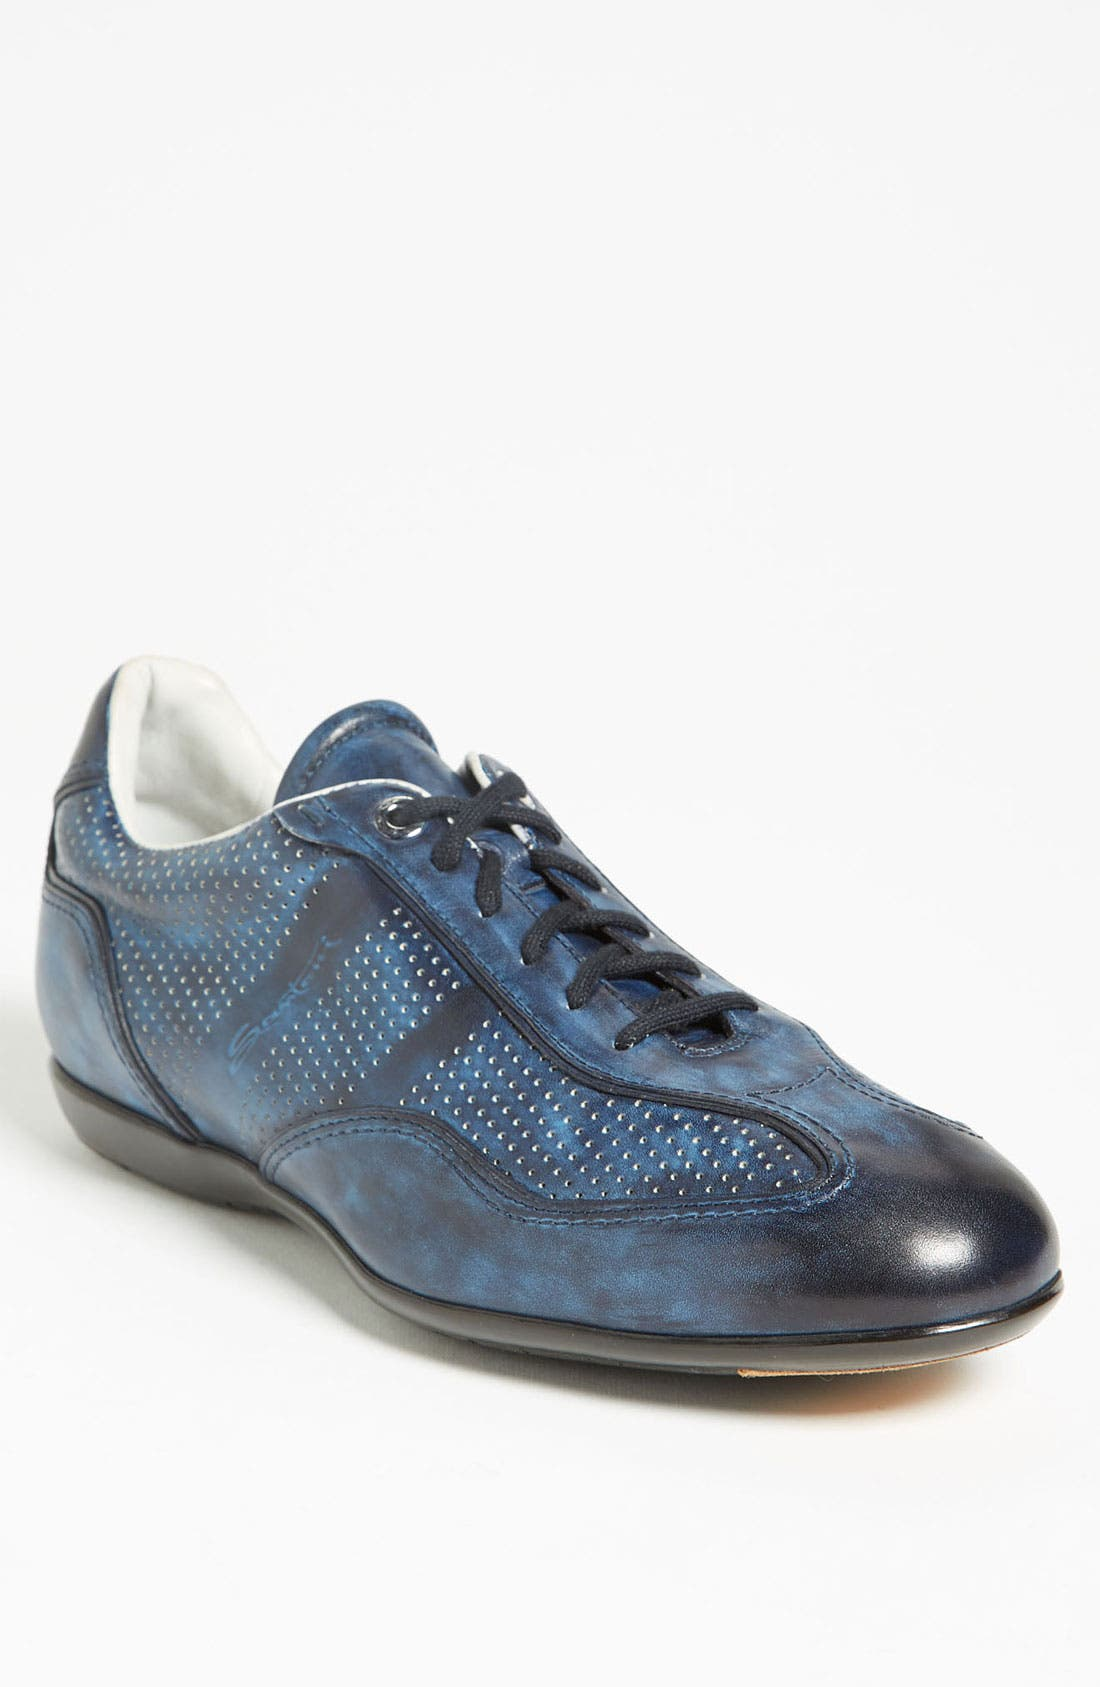 Main Image - Santoni 'Striper' Sneaker (Men)